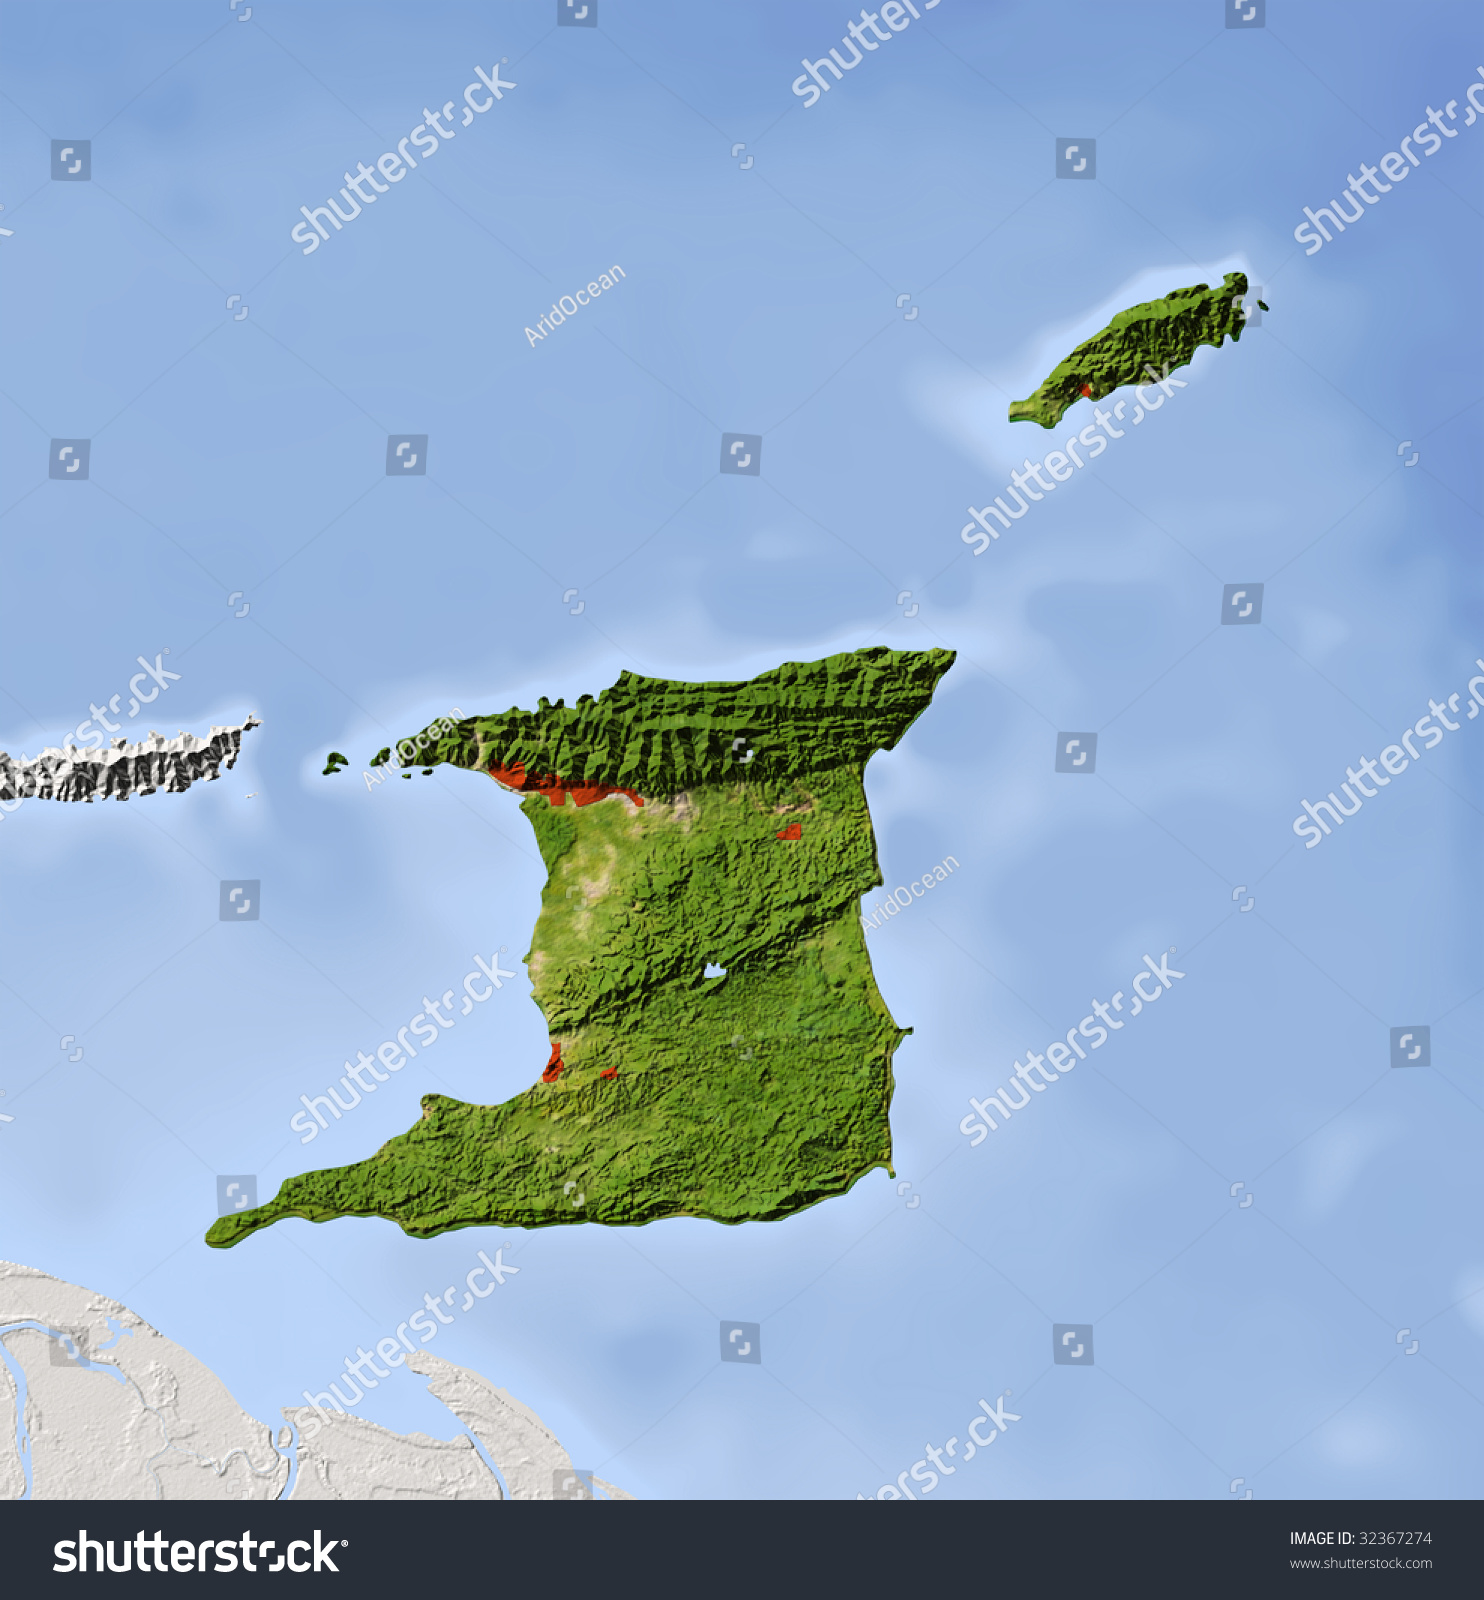 map out multiple addresses with Stock Photo Trinidad And Tobago Shaded Relief Map Colored According To Vegetation With Major Urban Areas on Stock Photo Trinidad And Tobago Shaded Relief Map Colored According To Vegetation With Major Urban Areas moreover Stock Vector Countries And Capitals Of The Europe Vector Illustration furthermore Stock Photo Chalermprakiet Temple L ang Thailand together with Stock Photo Anatomical Body Human Skeleton Anatomy Of Human Bony System Body Surface Contour And Palpable additionally Stock Vector Arabian Peninsula.